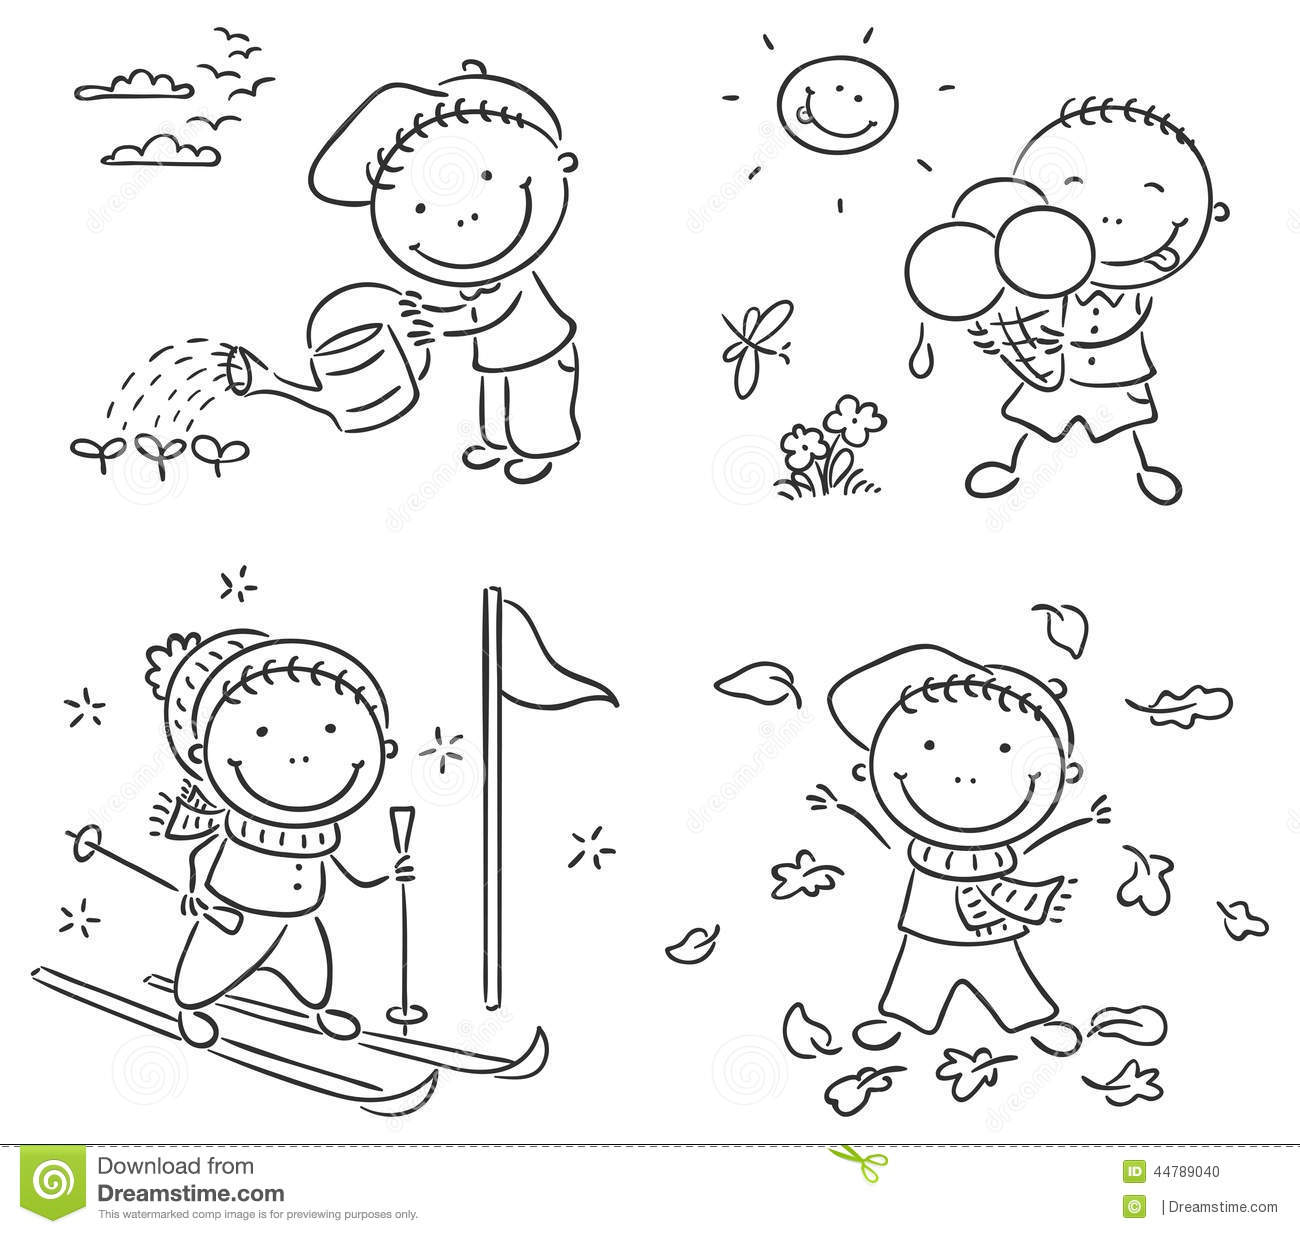 OutdoorOverload together with Article 9ba56dc0 Ed67 5a1e Be93 B96fe77afb28 also Stock Illustration Boy S Activities Four Seasons Little Image44789040 besides Pond Coloring Pages furthermore Can You Name It Game Sheet. on season to outdoors